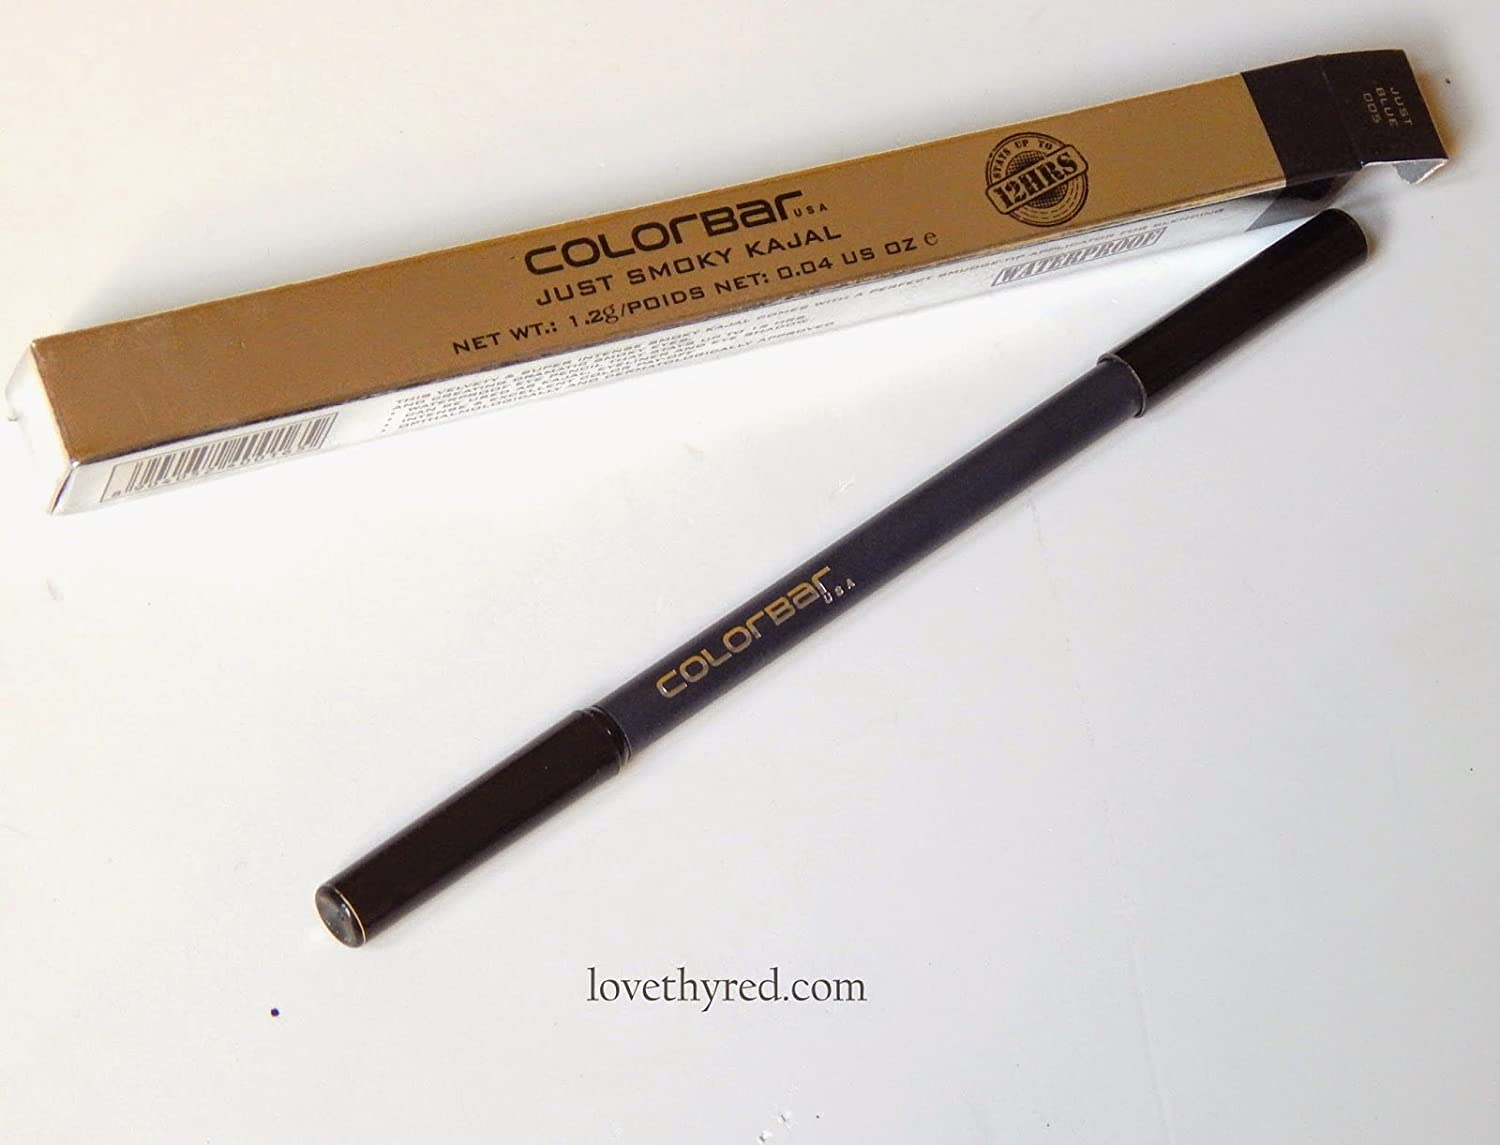 Colorbar Just Smoky Kajal, Just Black